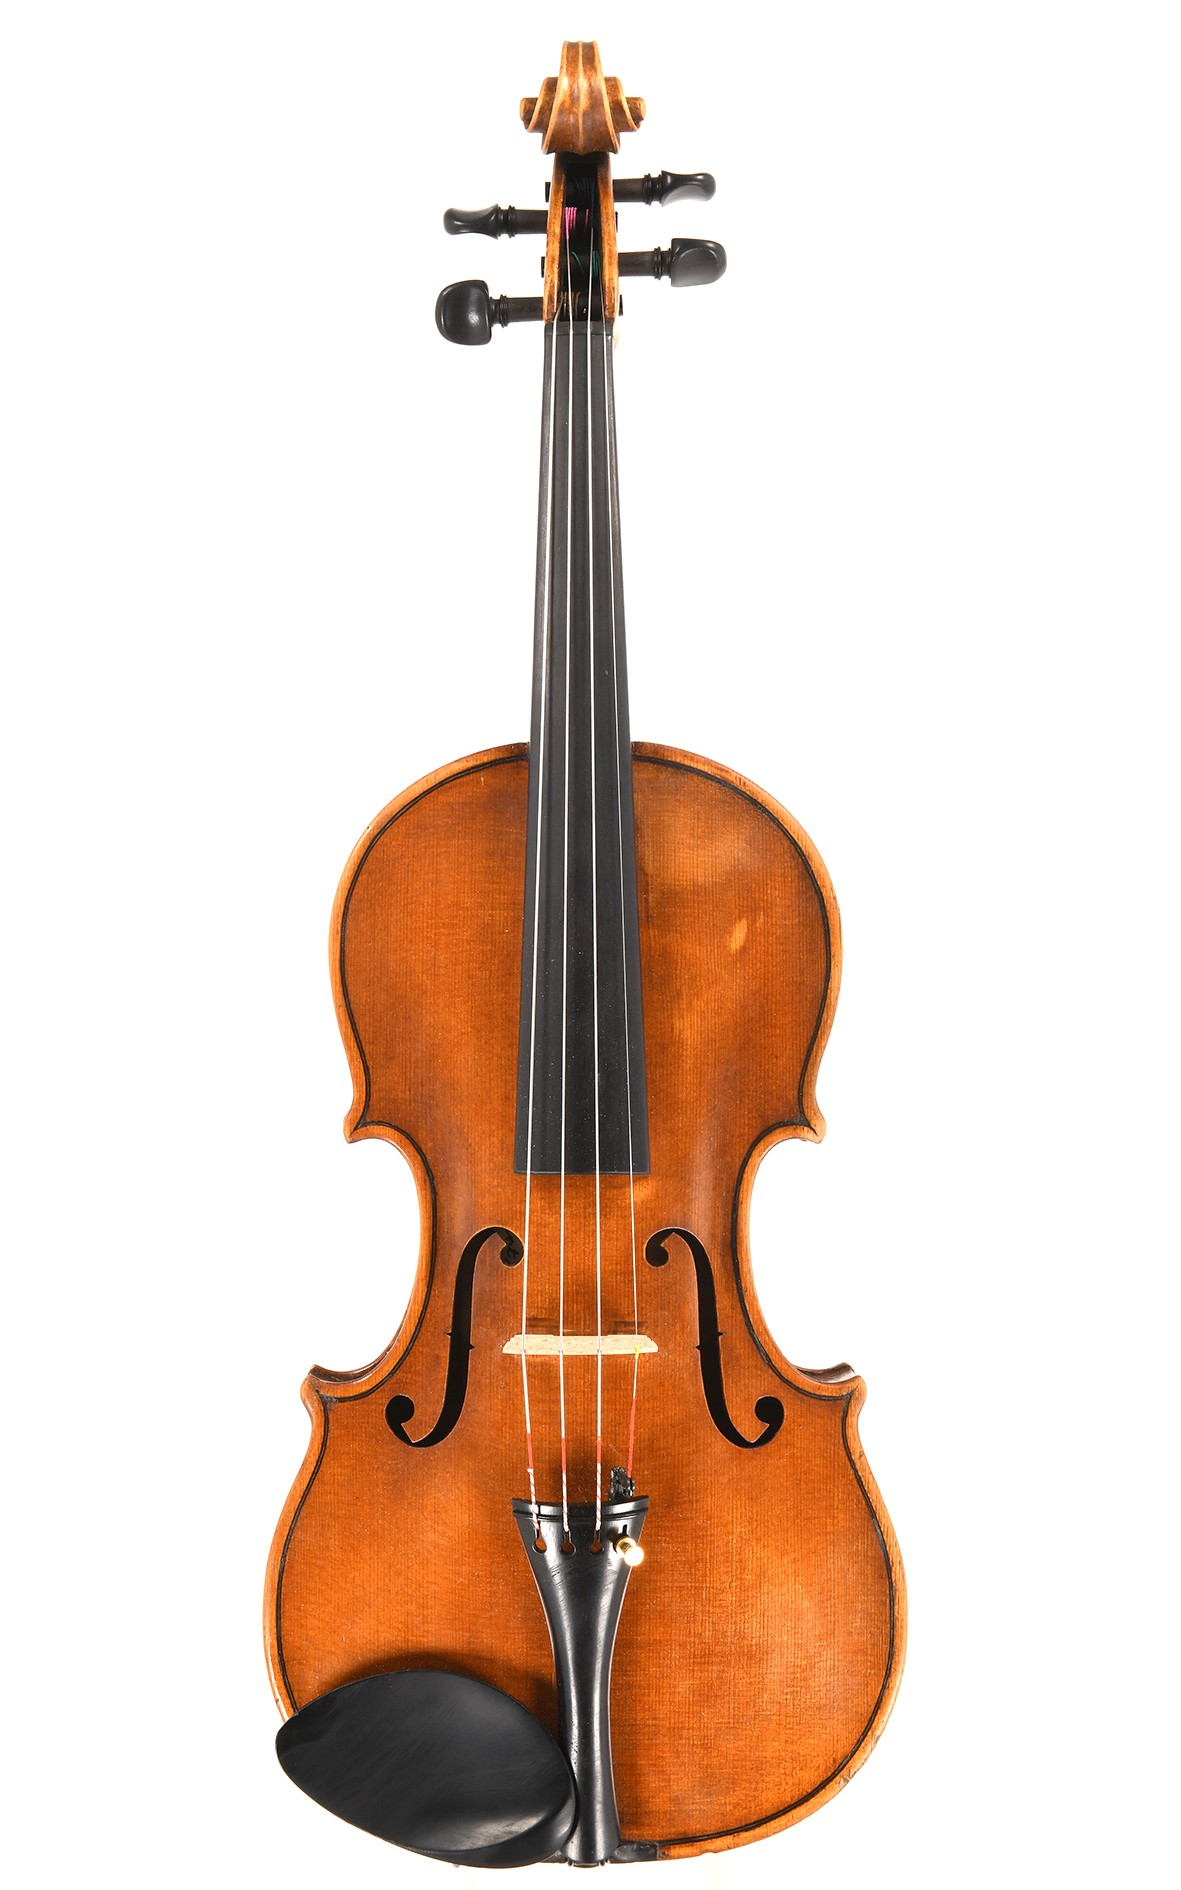 Historically interestig violin by Ernst Grah, Solingen 1924